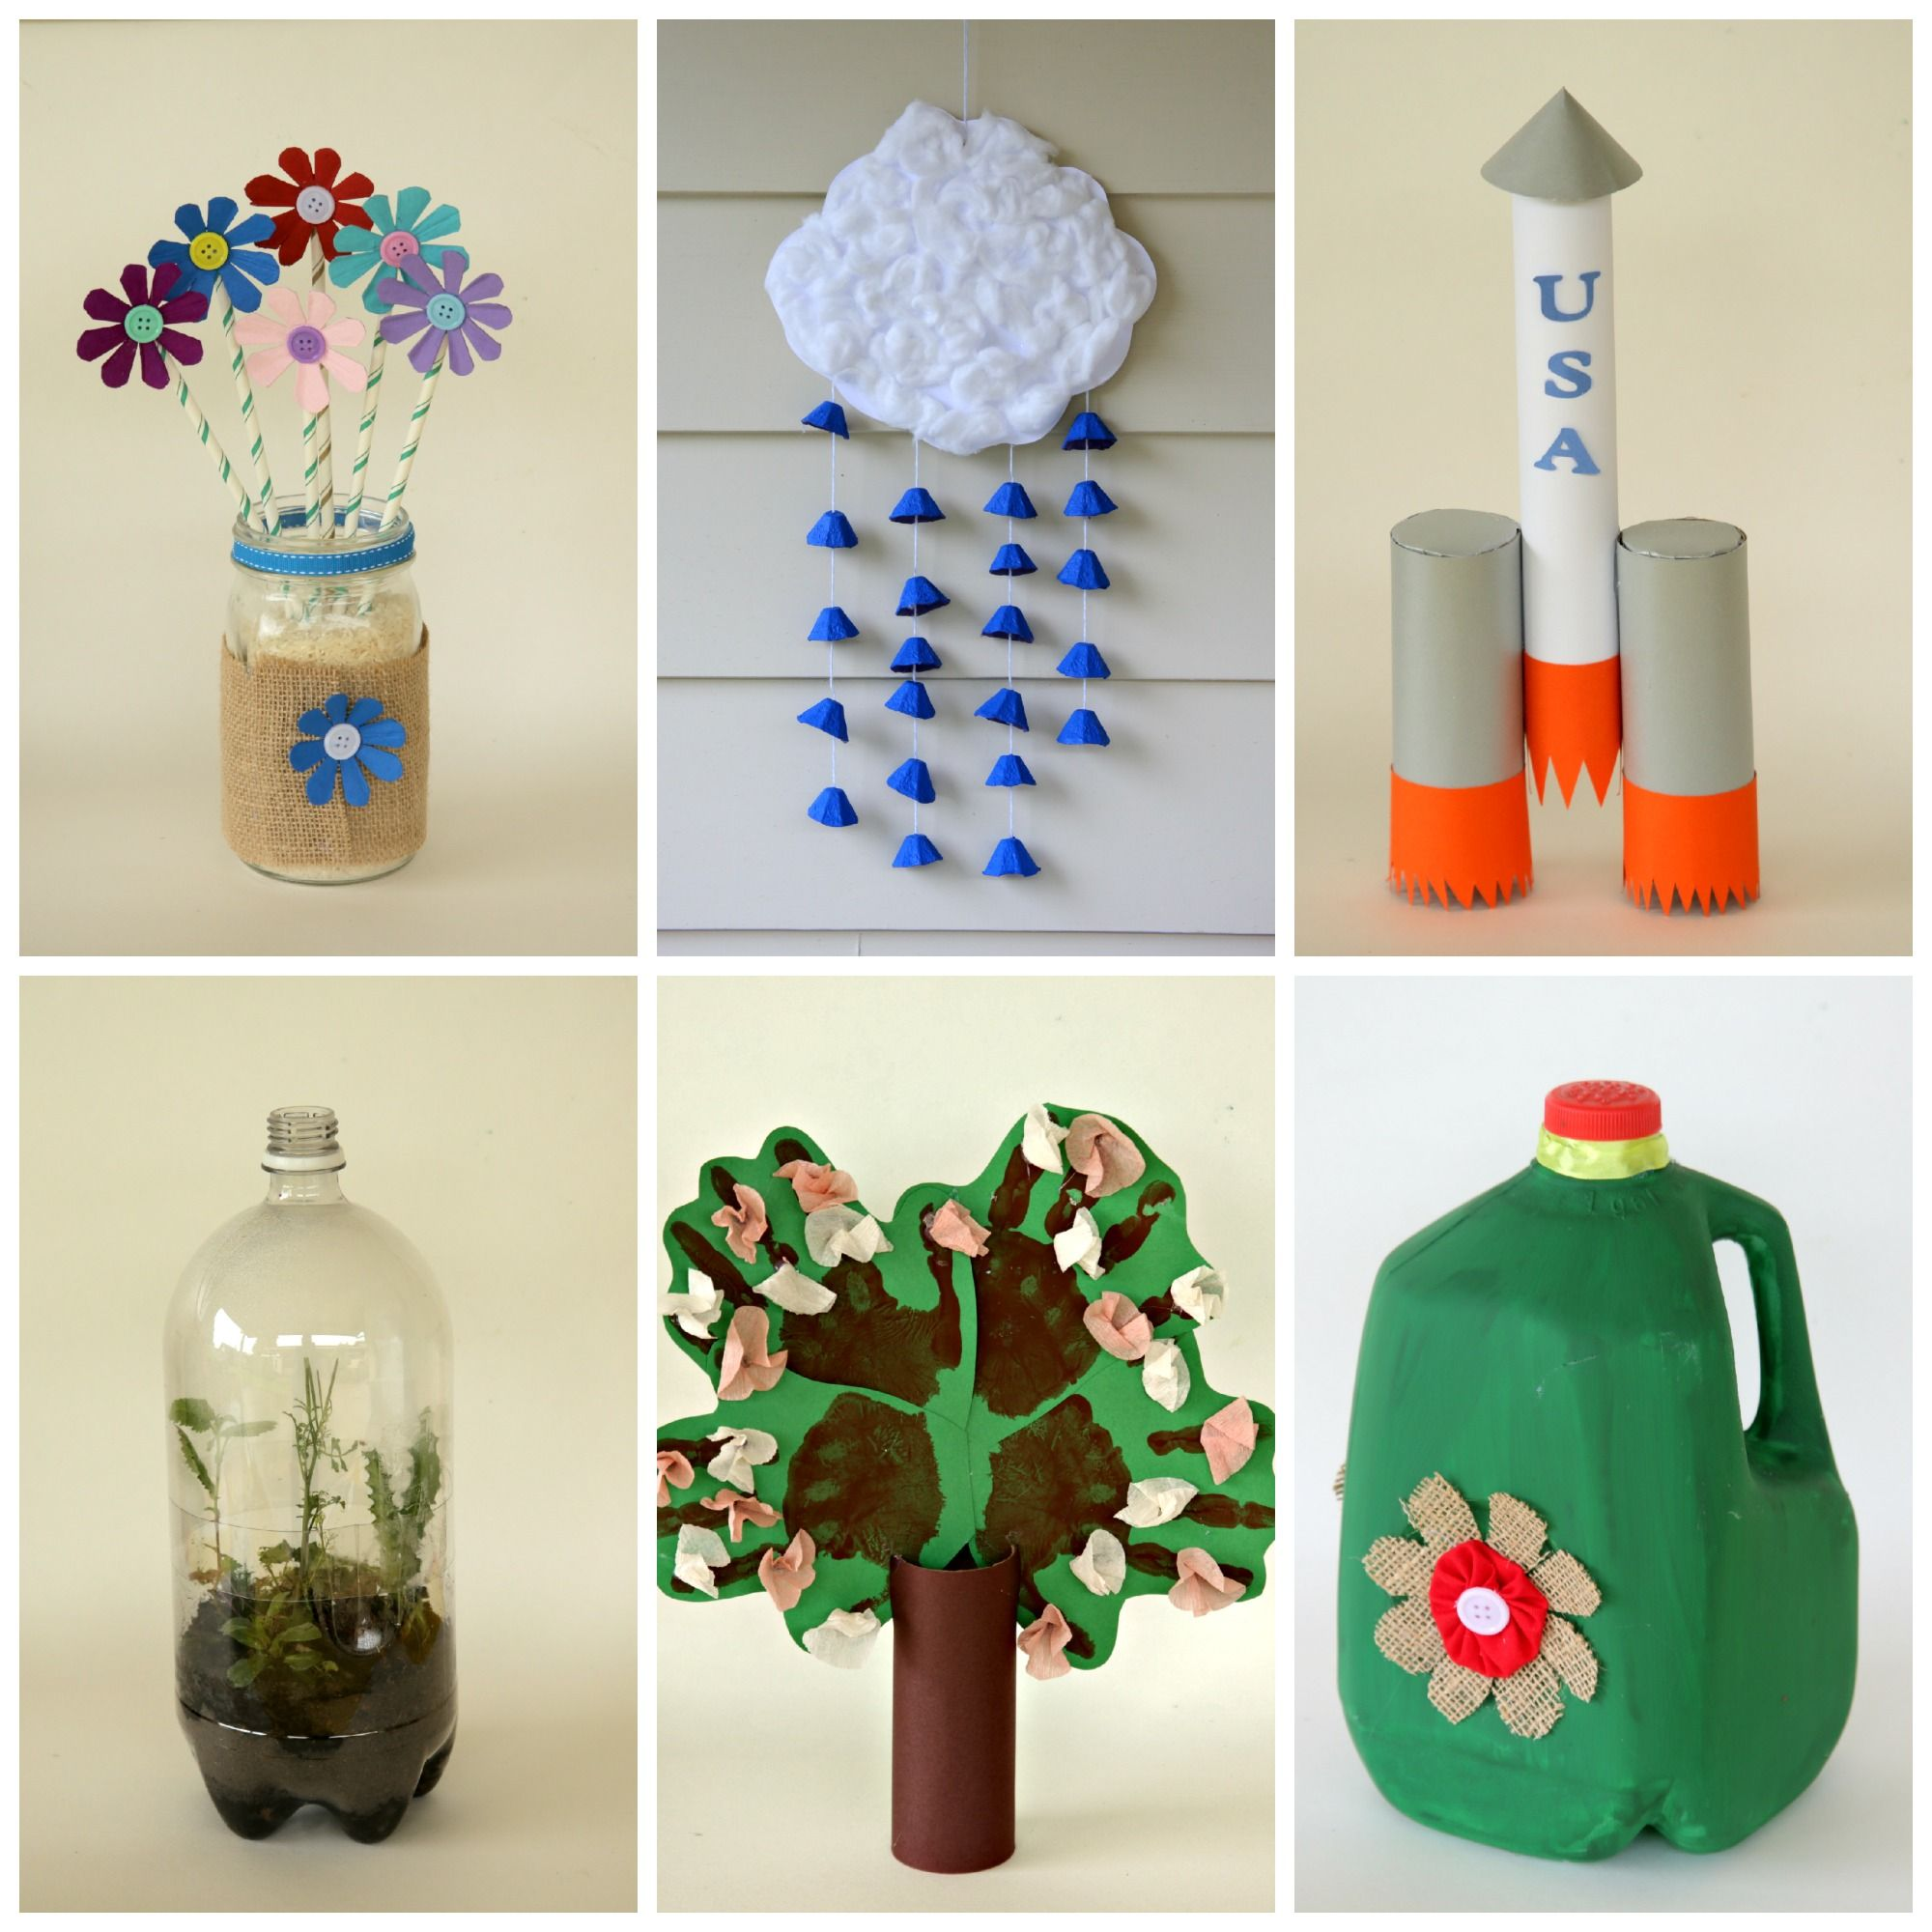 Take care of mother earth by reusing recyclables in fun for Ideas for arts and crafts for adults